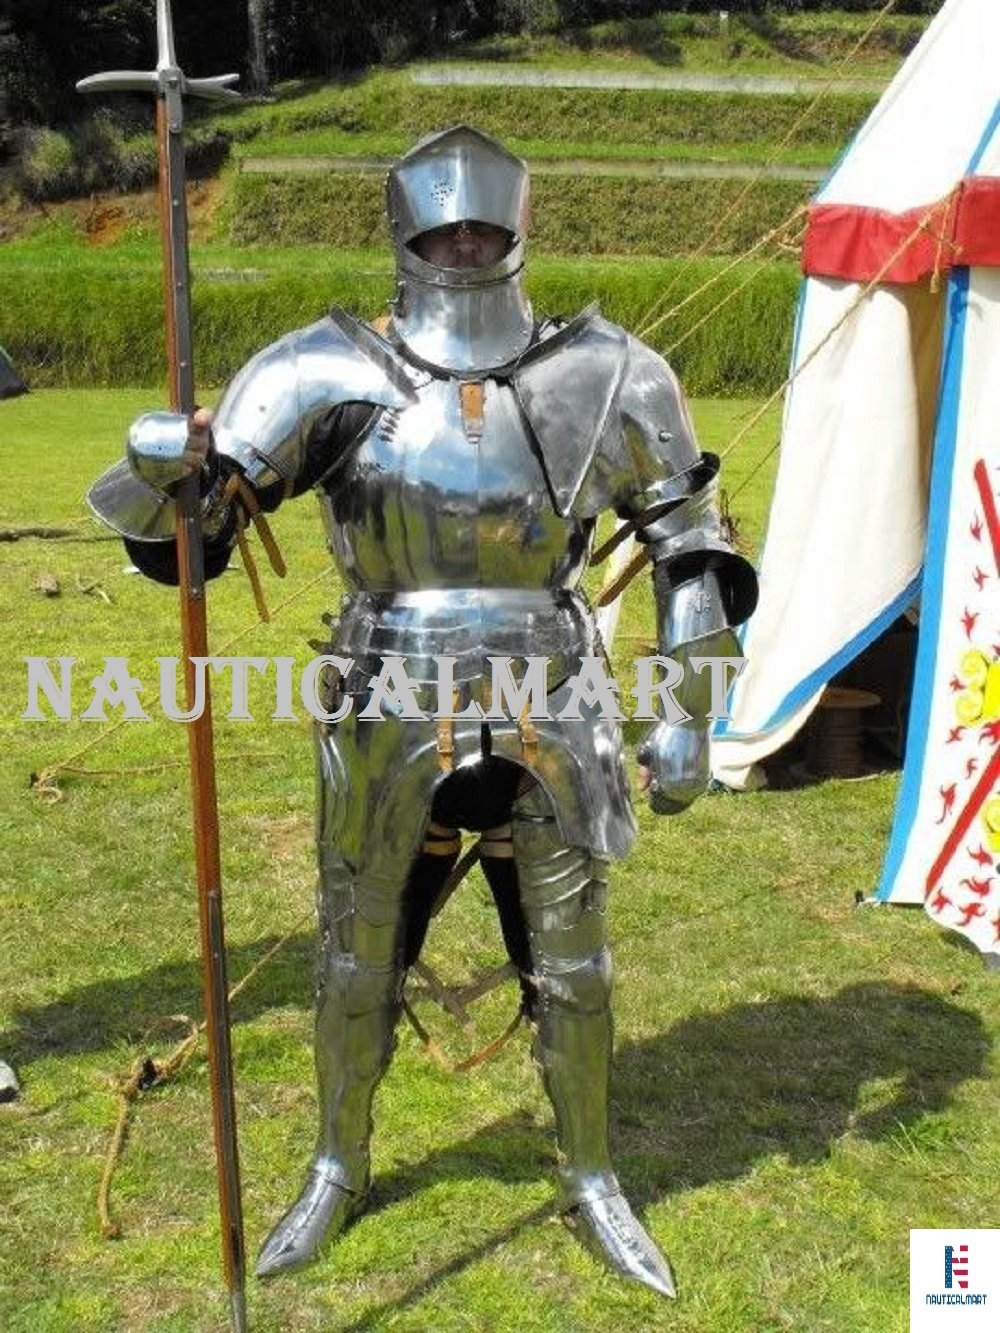 Medieval Knight Suit of Armor 17th Century Combat Full Body Armour Suit